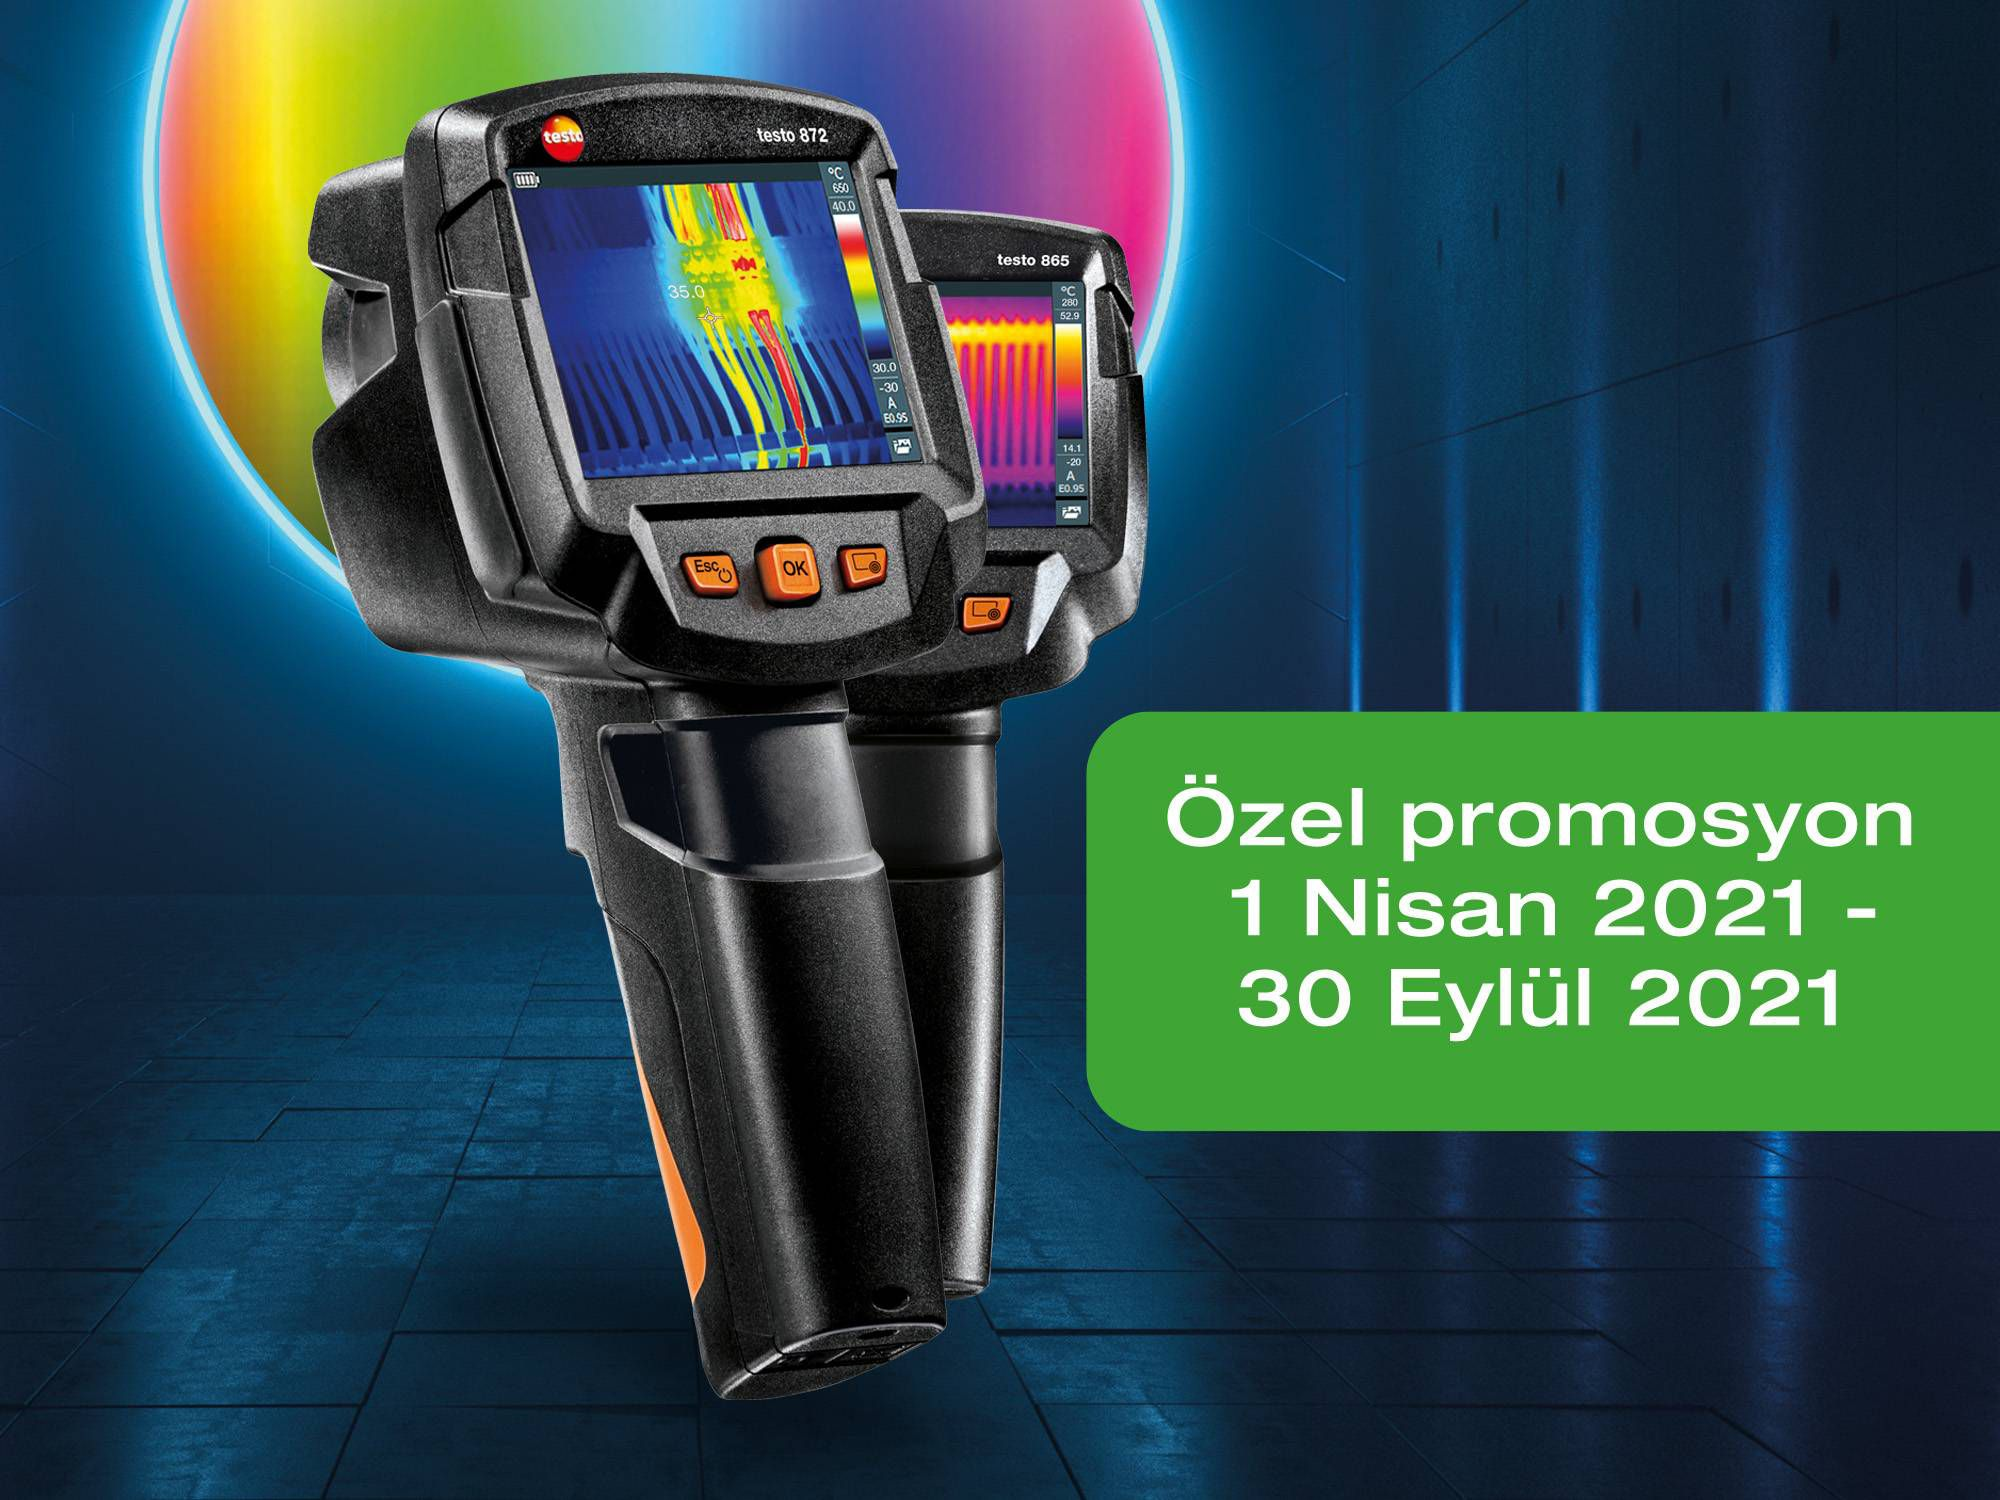 The thermal imagers testo 865, 868, 871 and 872